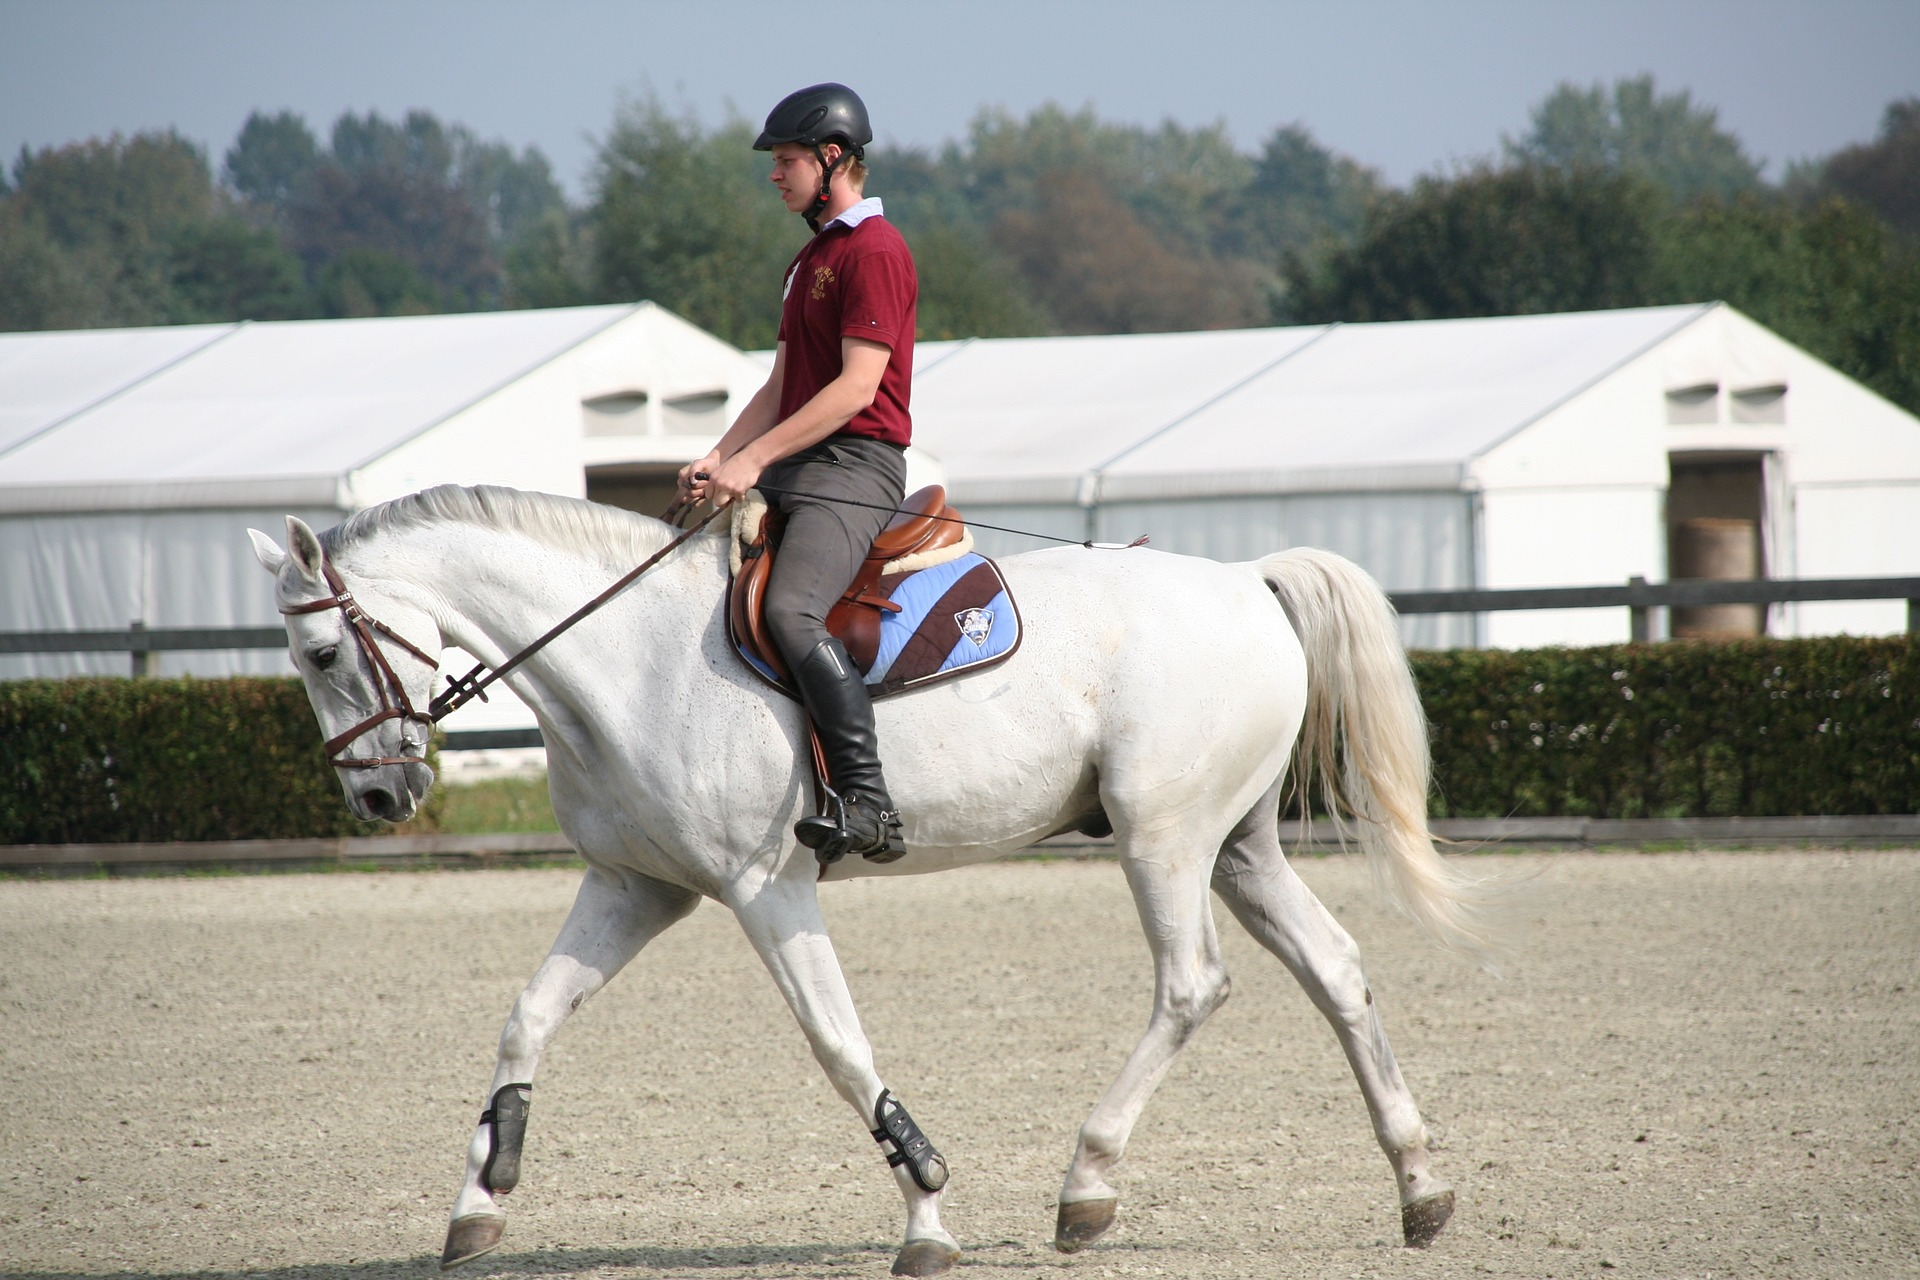 Equestrian saves money by exercising a grey horse for a trainer